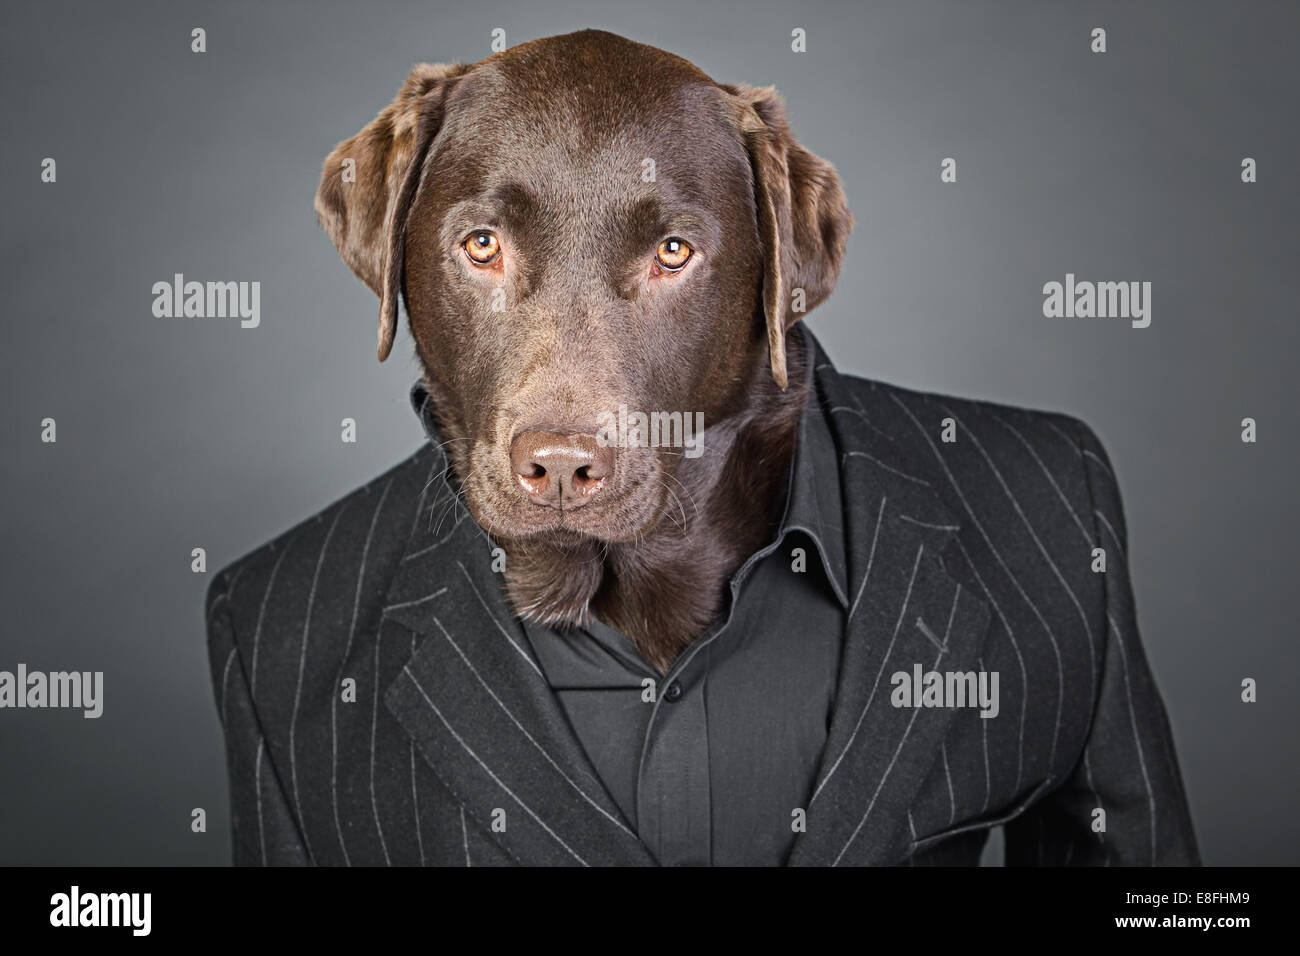 Cool Looking Chocolate Labrador in Pinstripe Suit - Stock Image